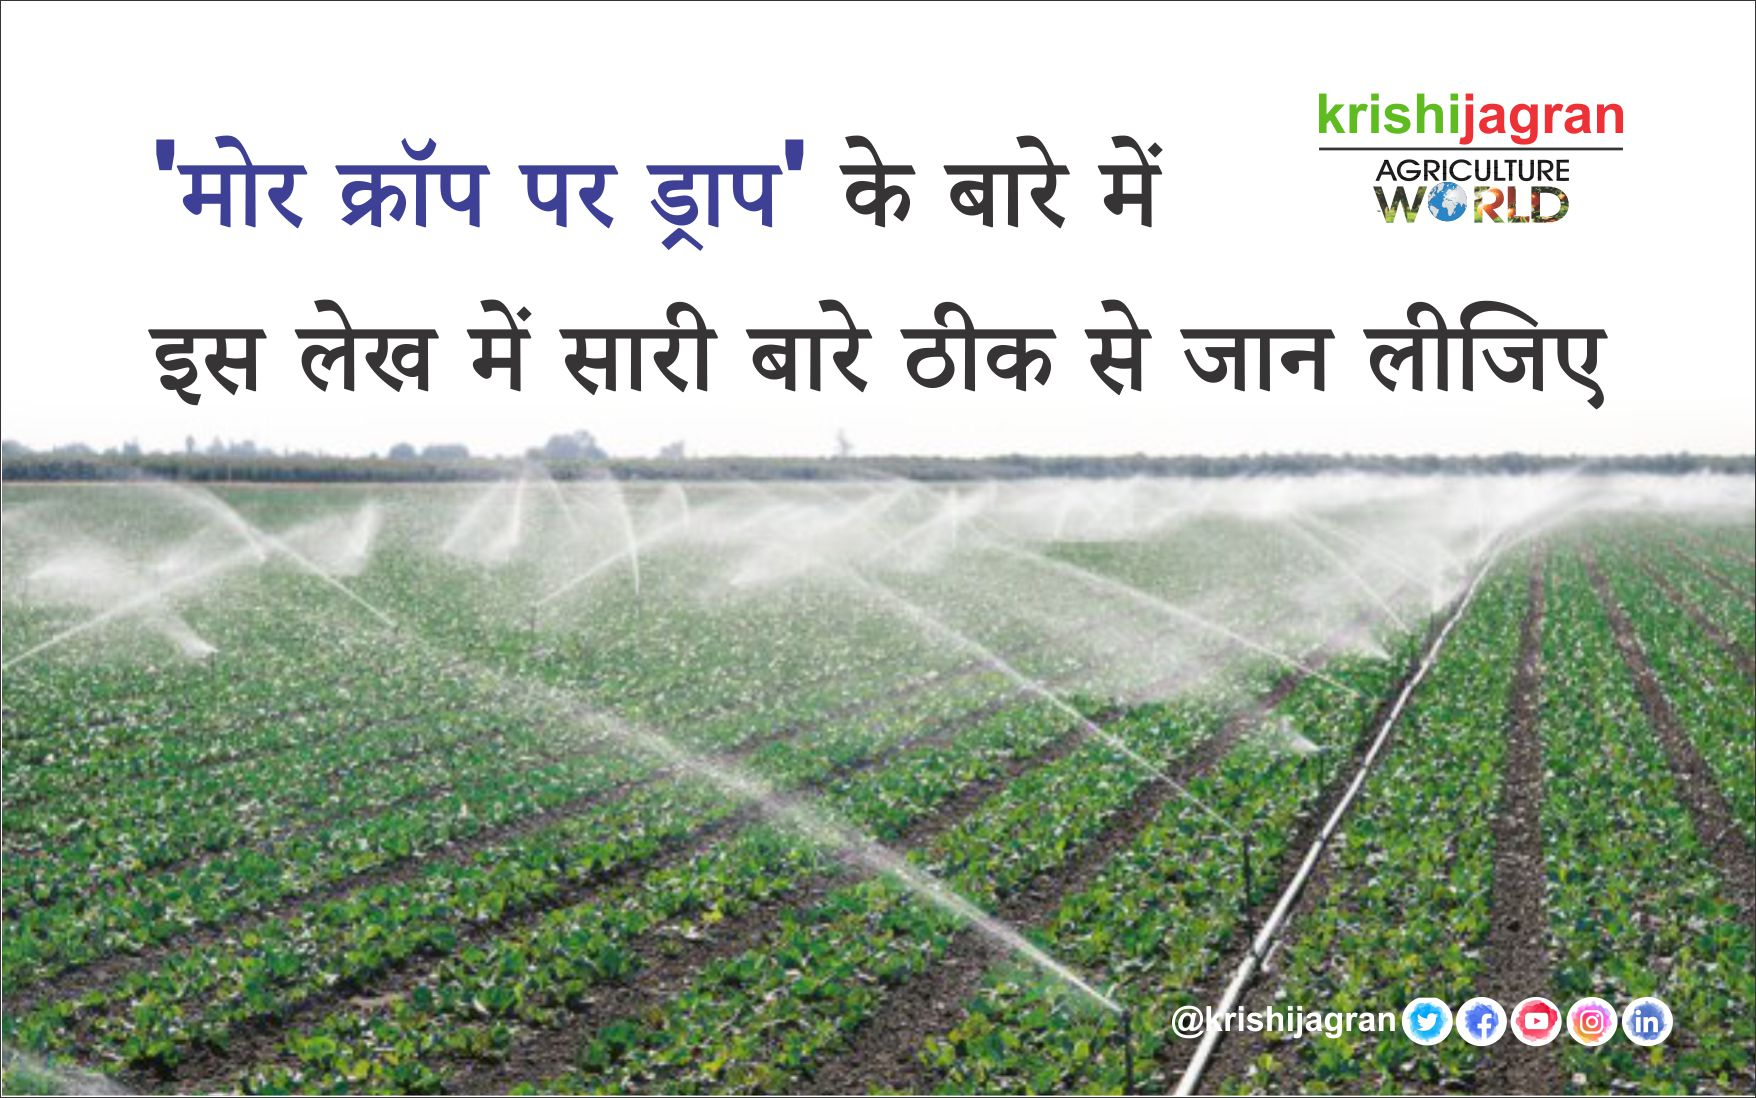 Irrigation With Drip And Sprinkler Method, 'Drop Crop On More Crop'